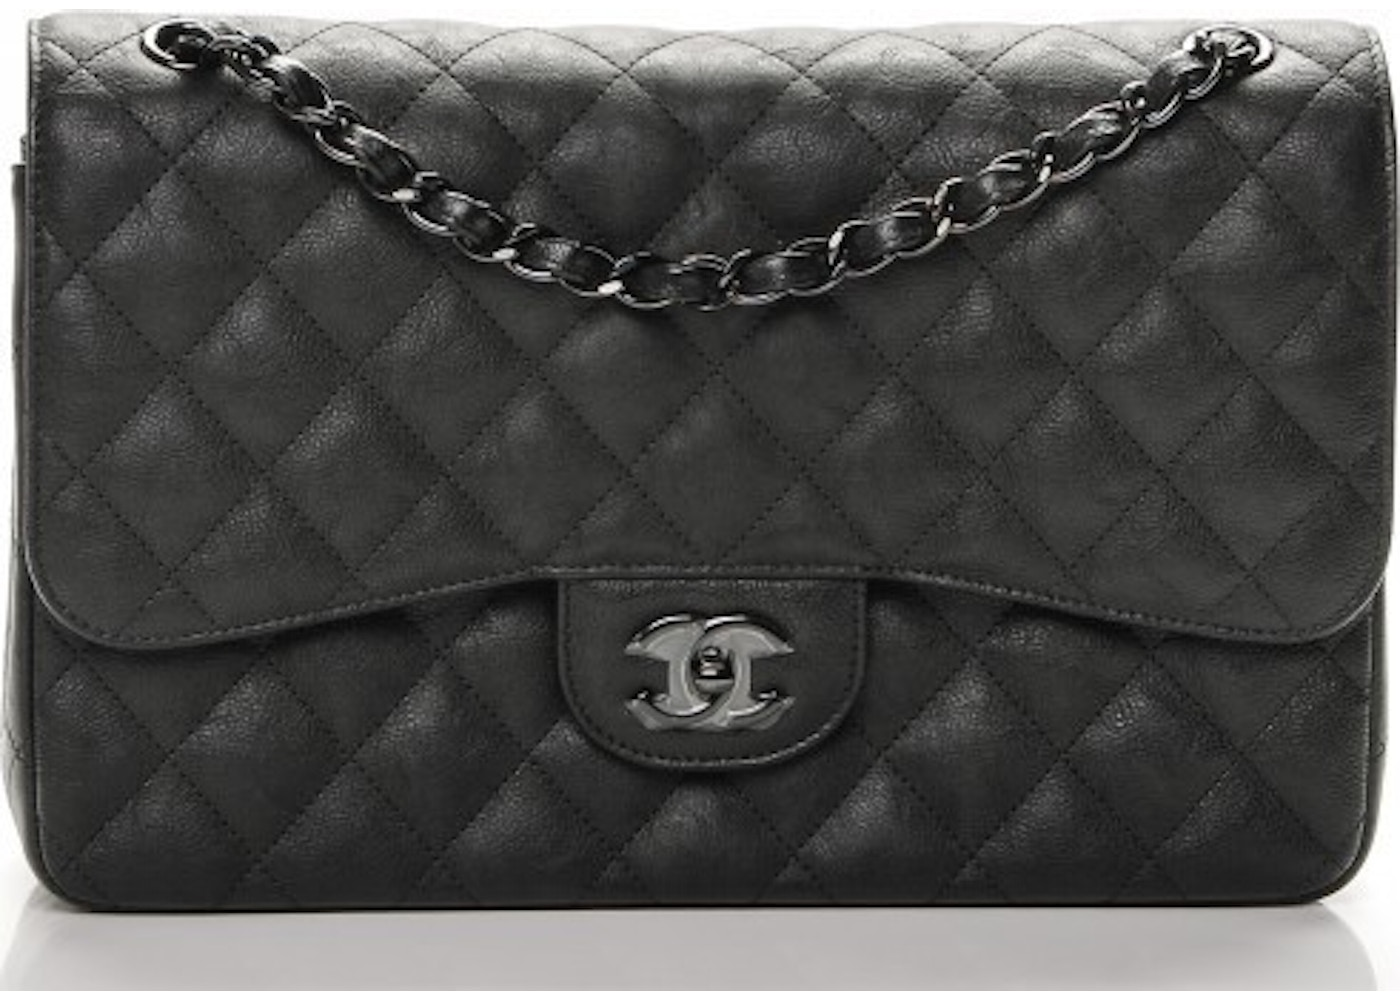 c91715ec1a2d Buy & Sell Chanel Flap Handbags - Average Sale Price